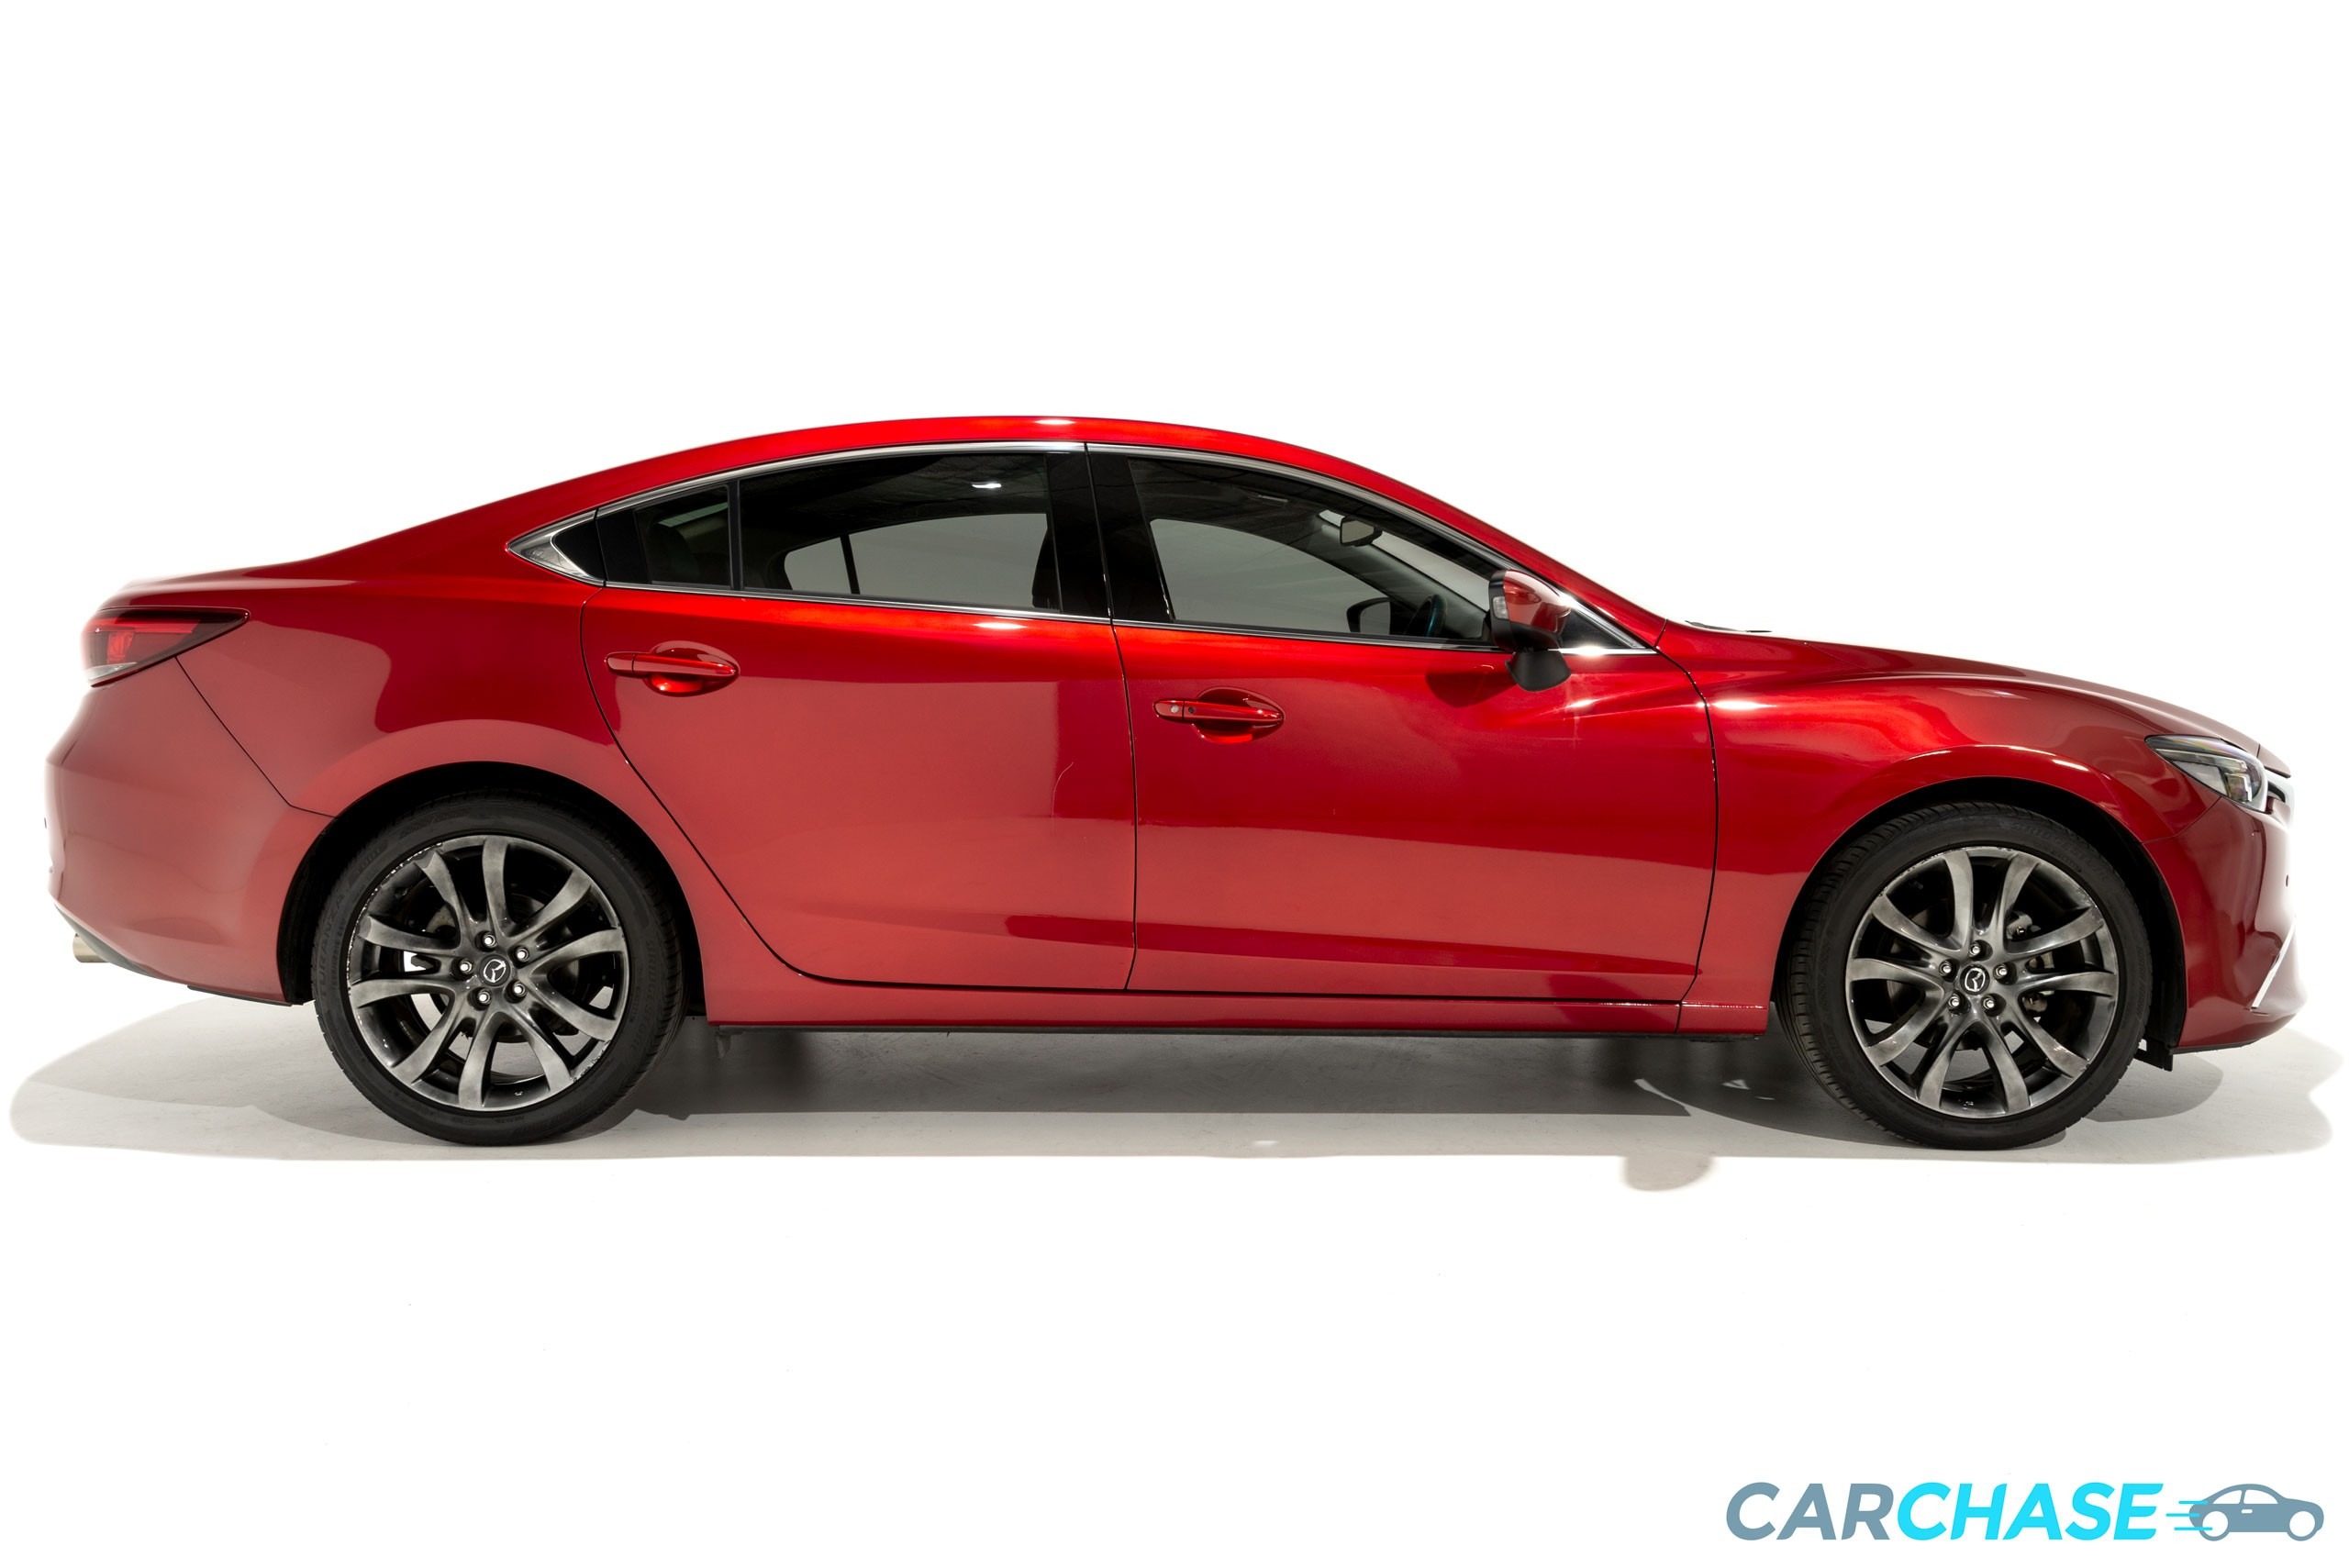 Image of right profile of 2015 Mazda 6 Atenza